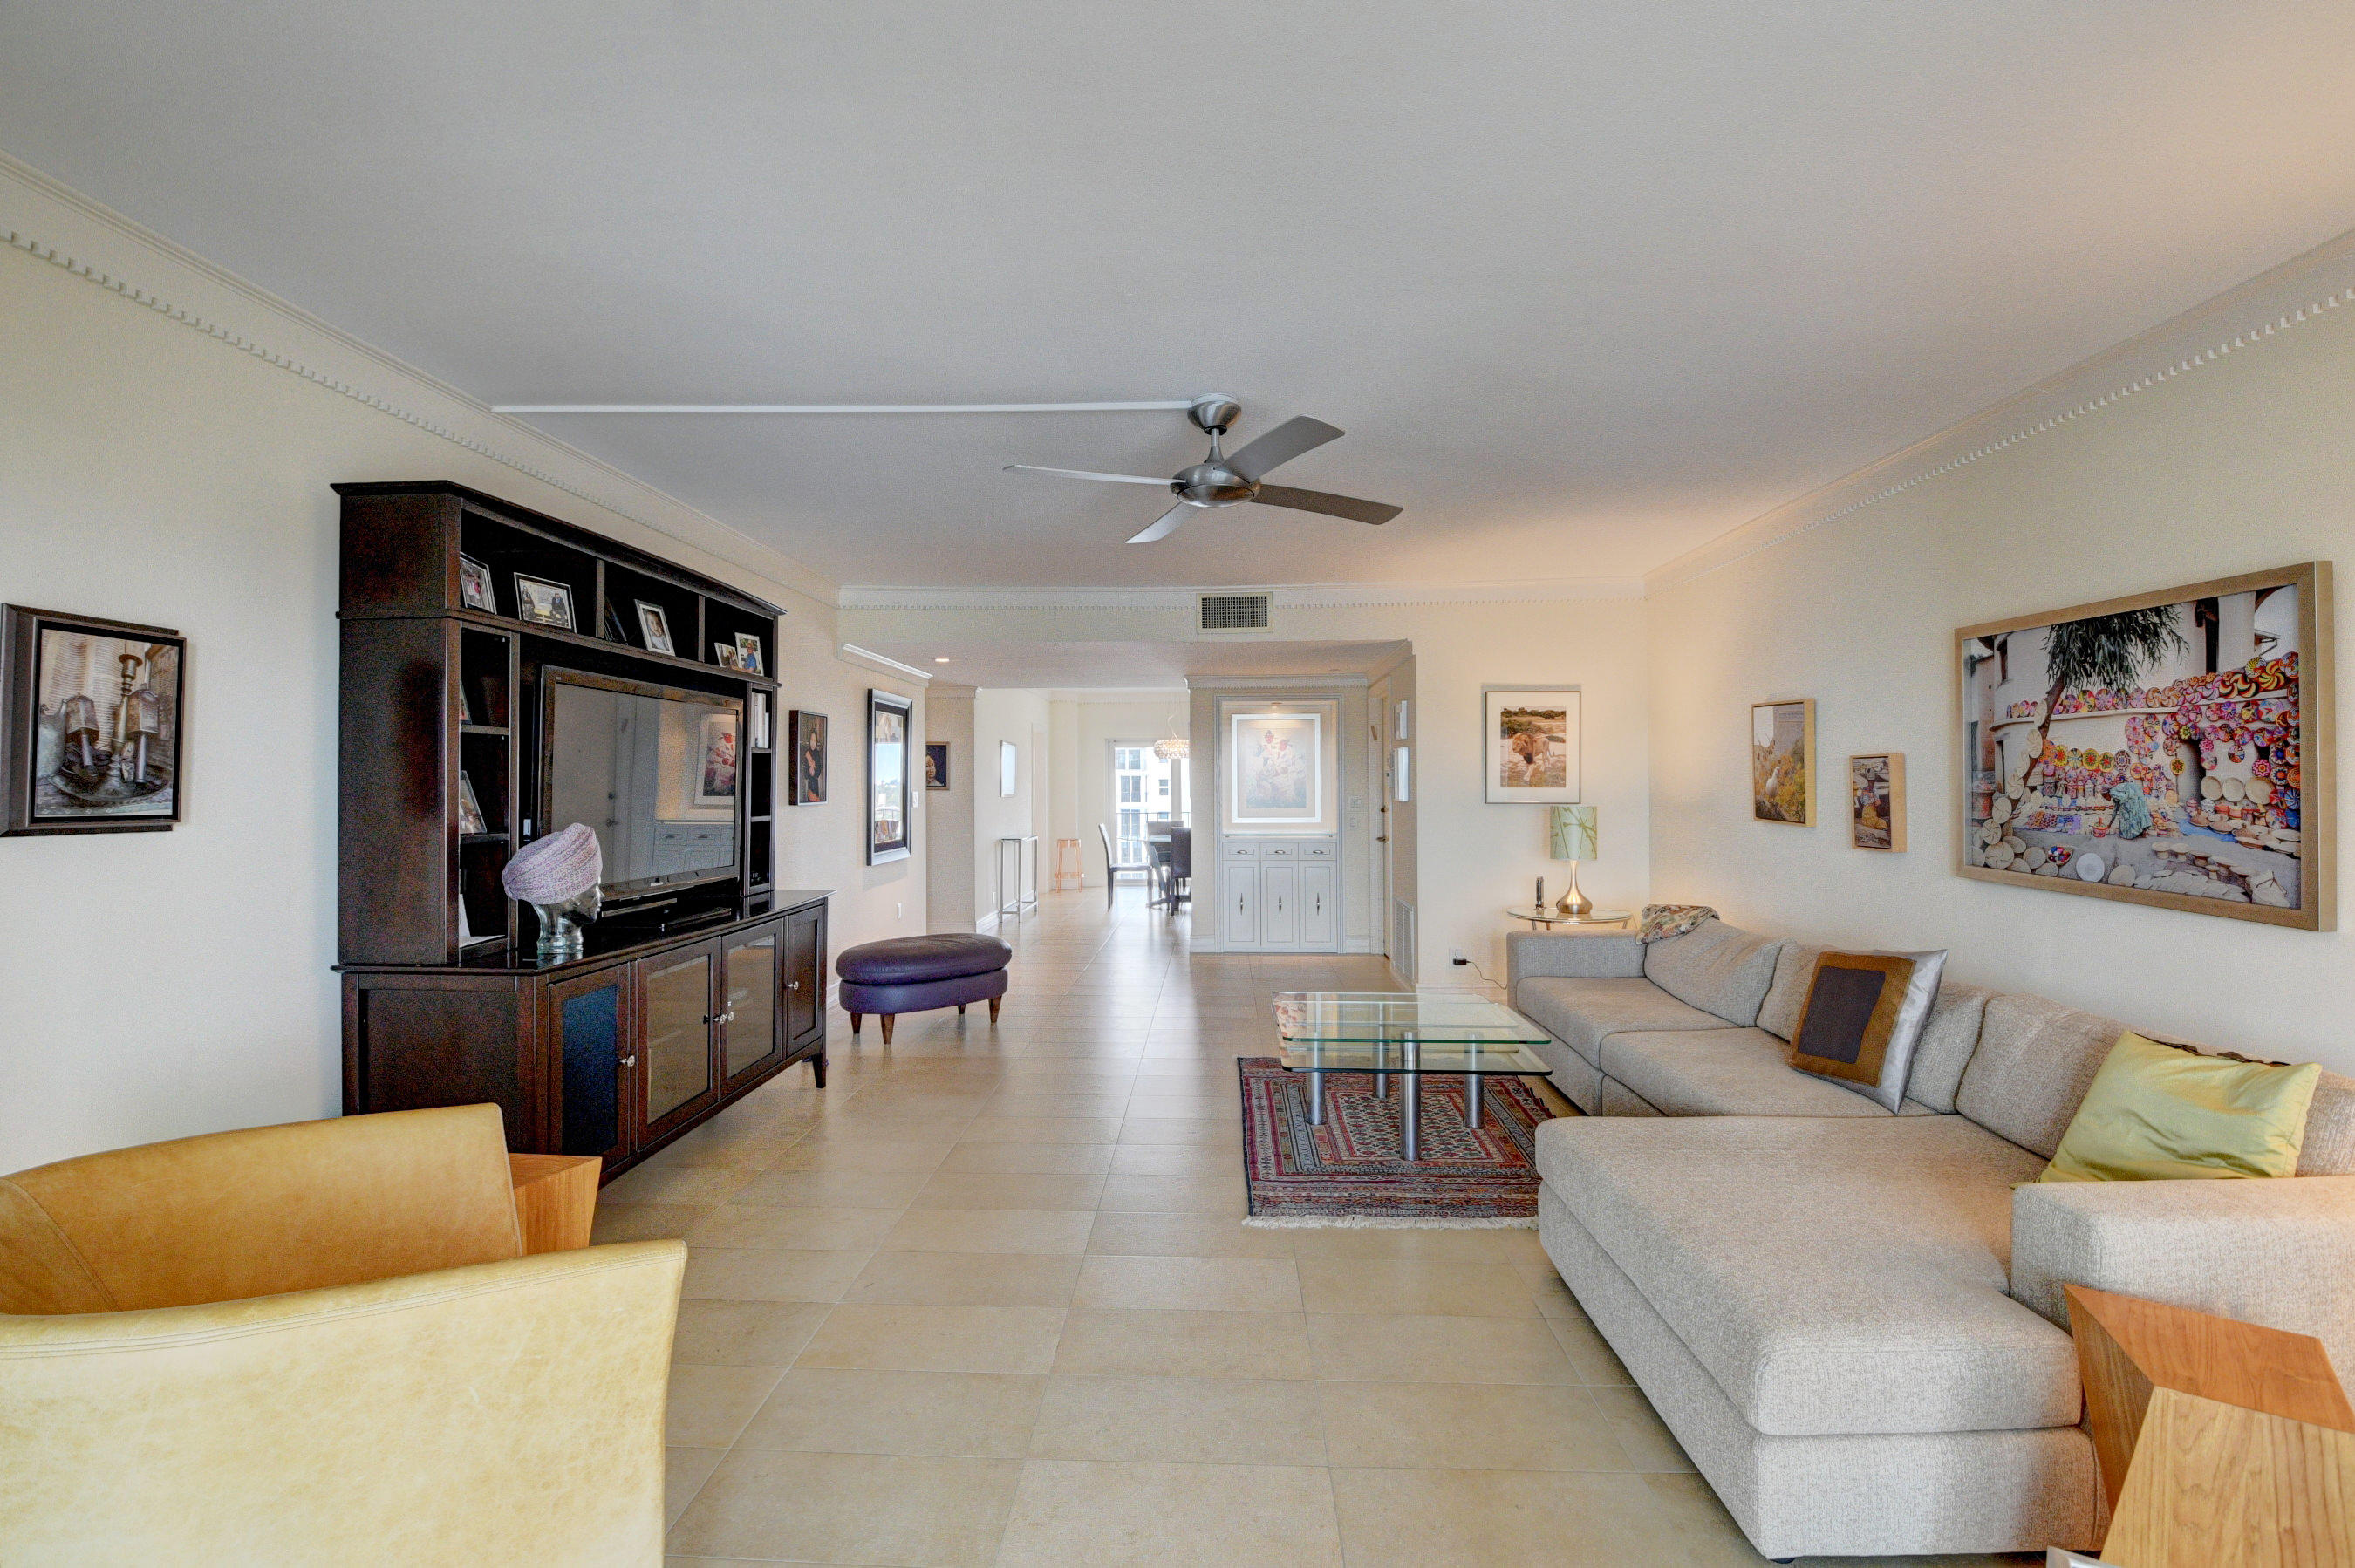 SEAGATE HOMES FOR SALE